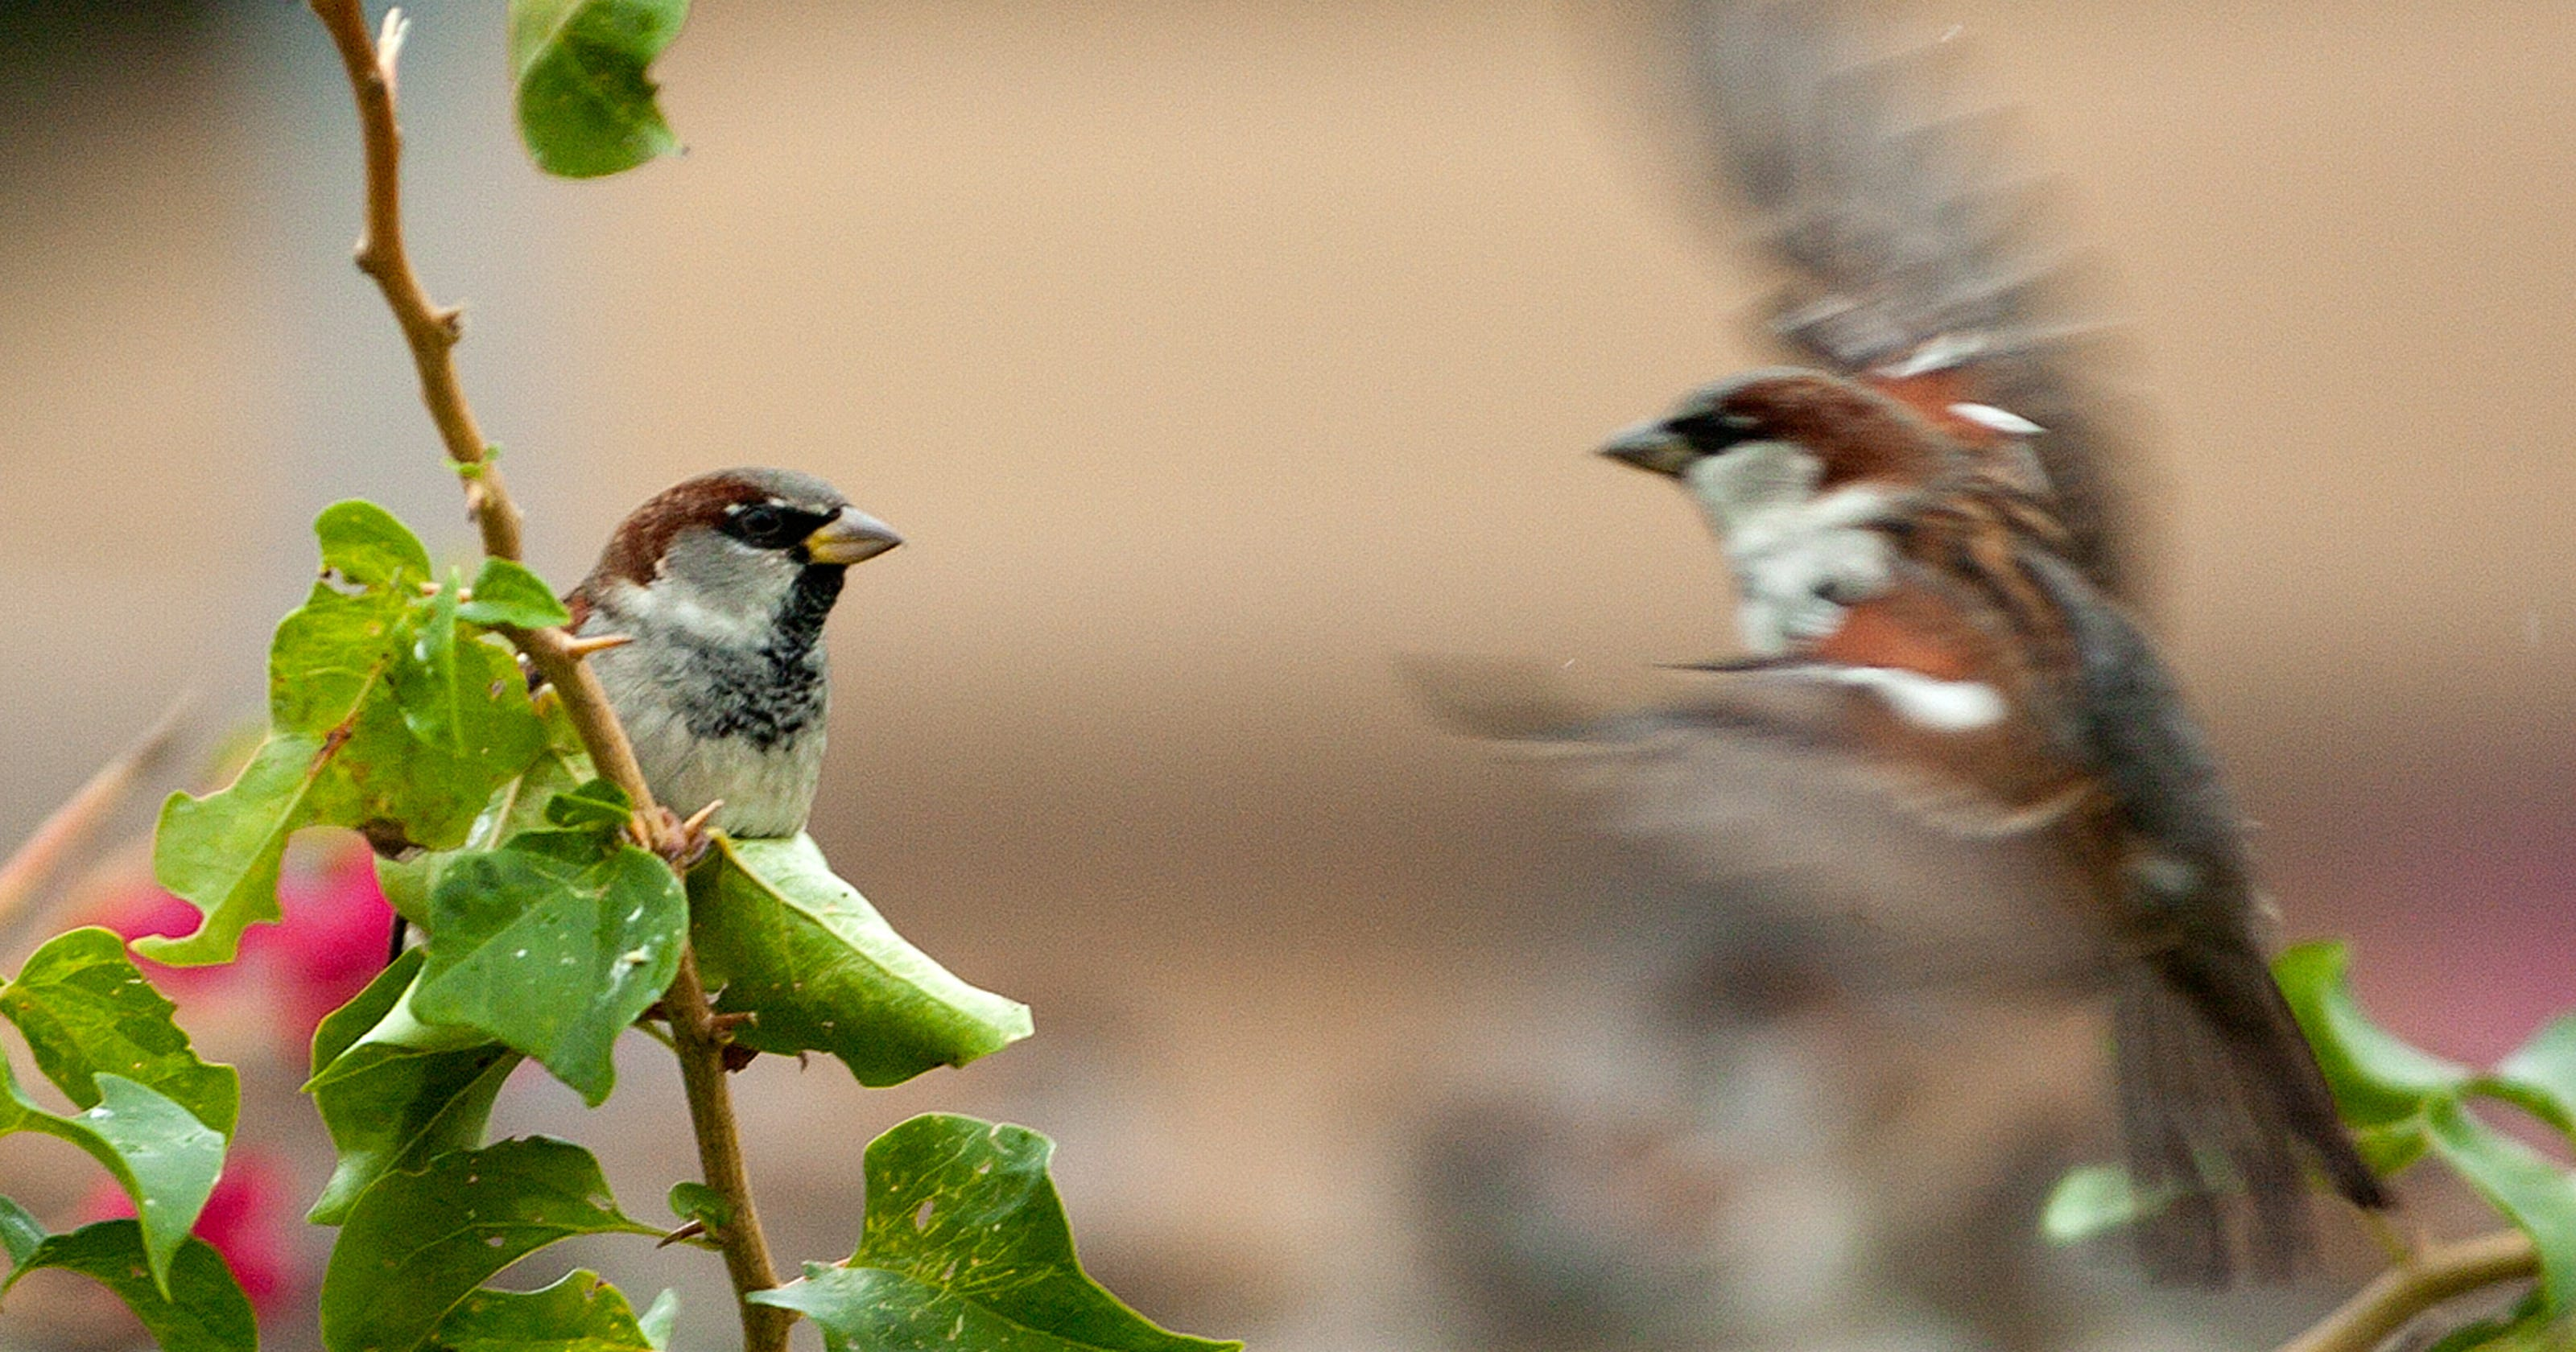 Researchers stumped over decline of sparrow population